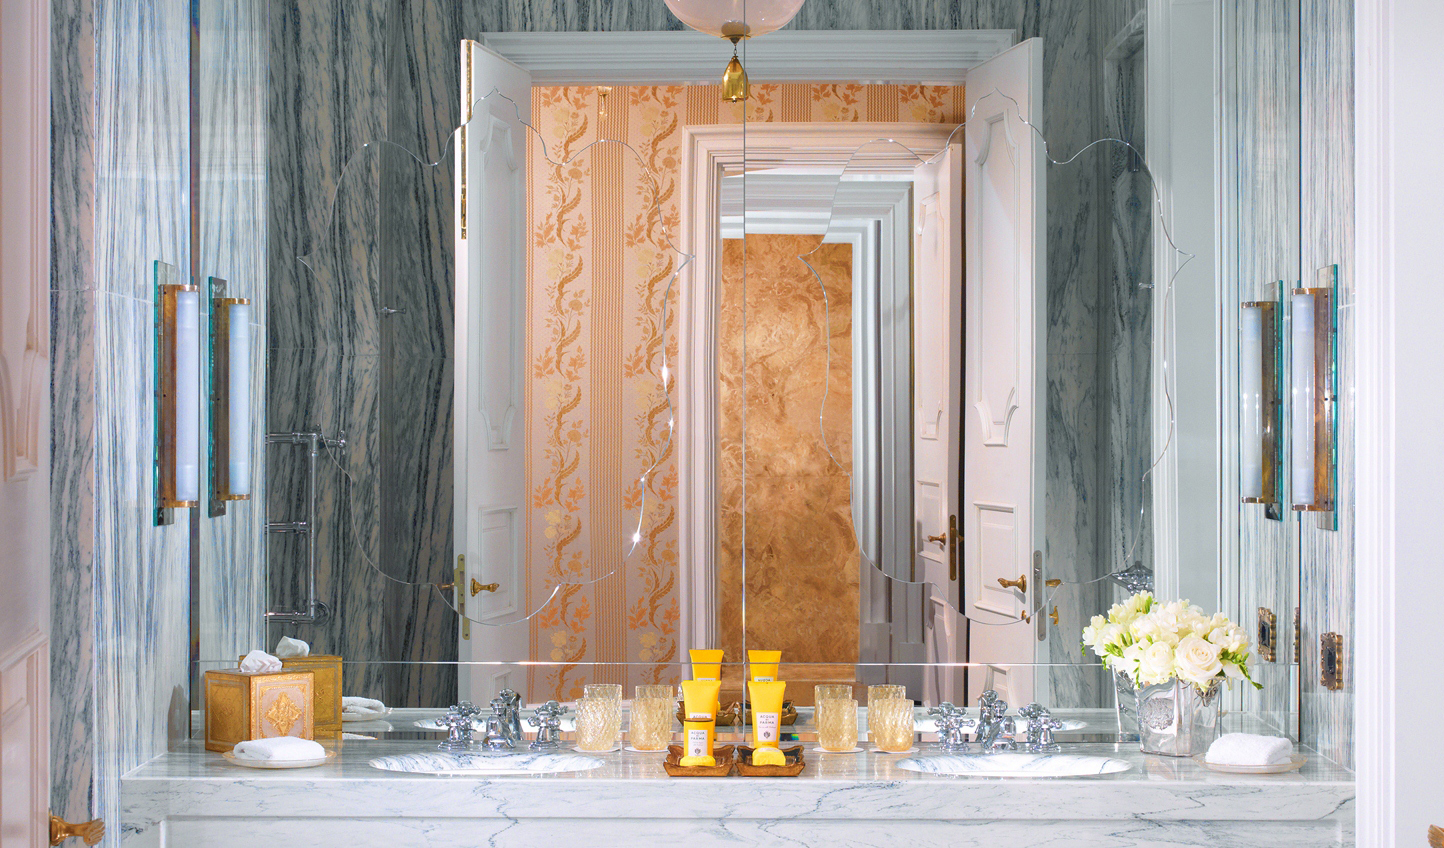 Decadent marble bathrooms